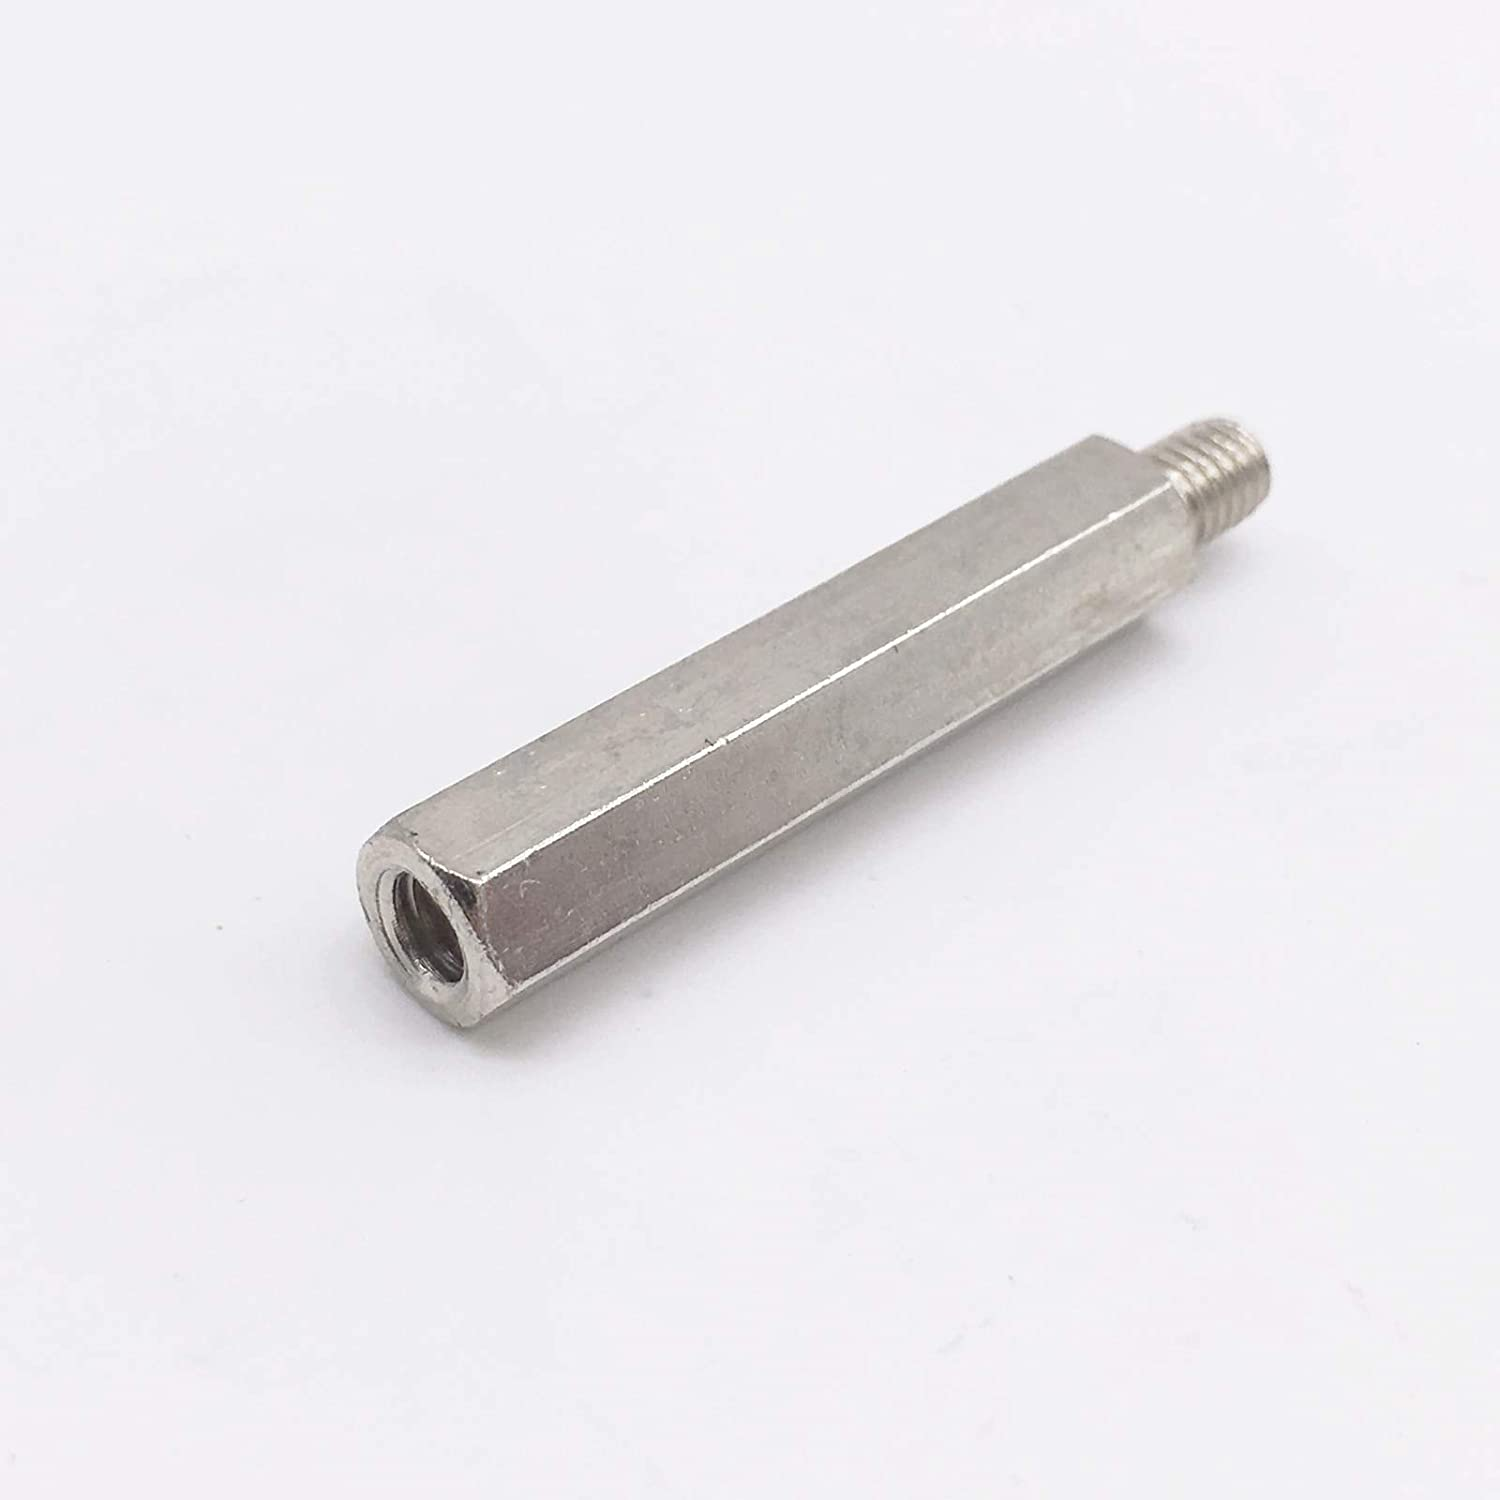 M3x16+6 Spacer Screws M3 Hex Al sold out. Standoff Nuts Chicago Mall to Brass Male Female